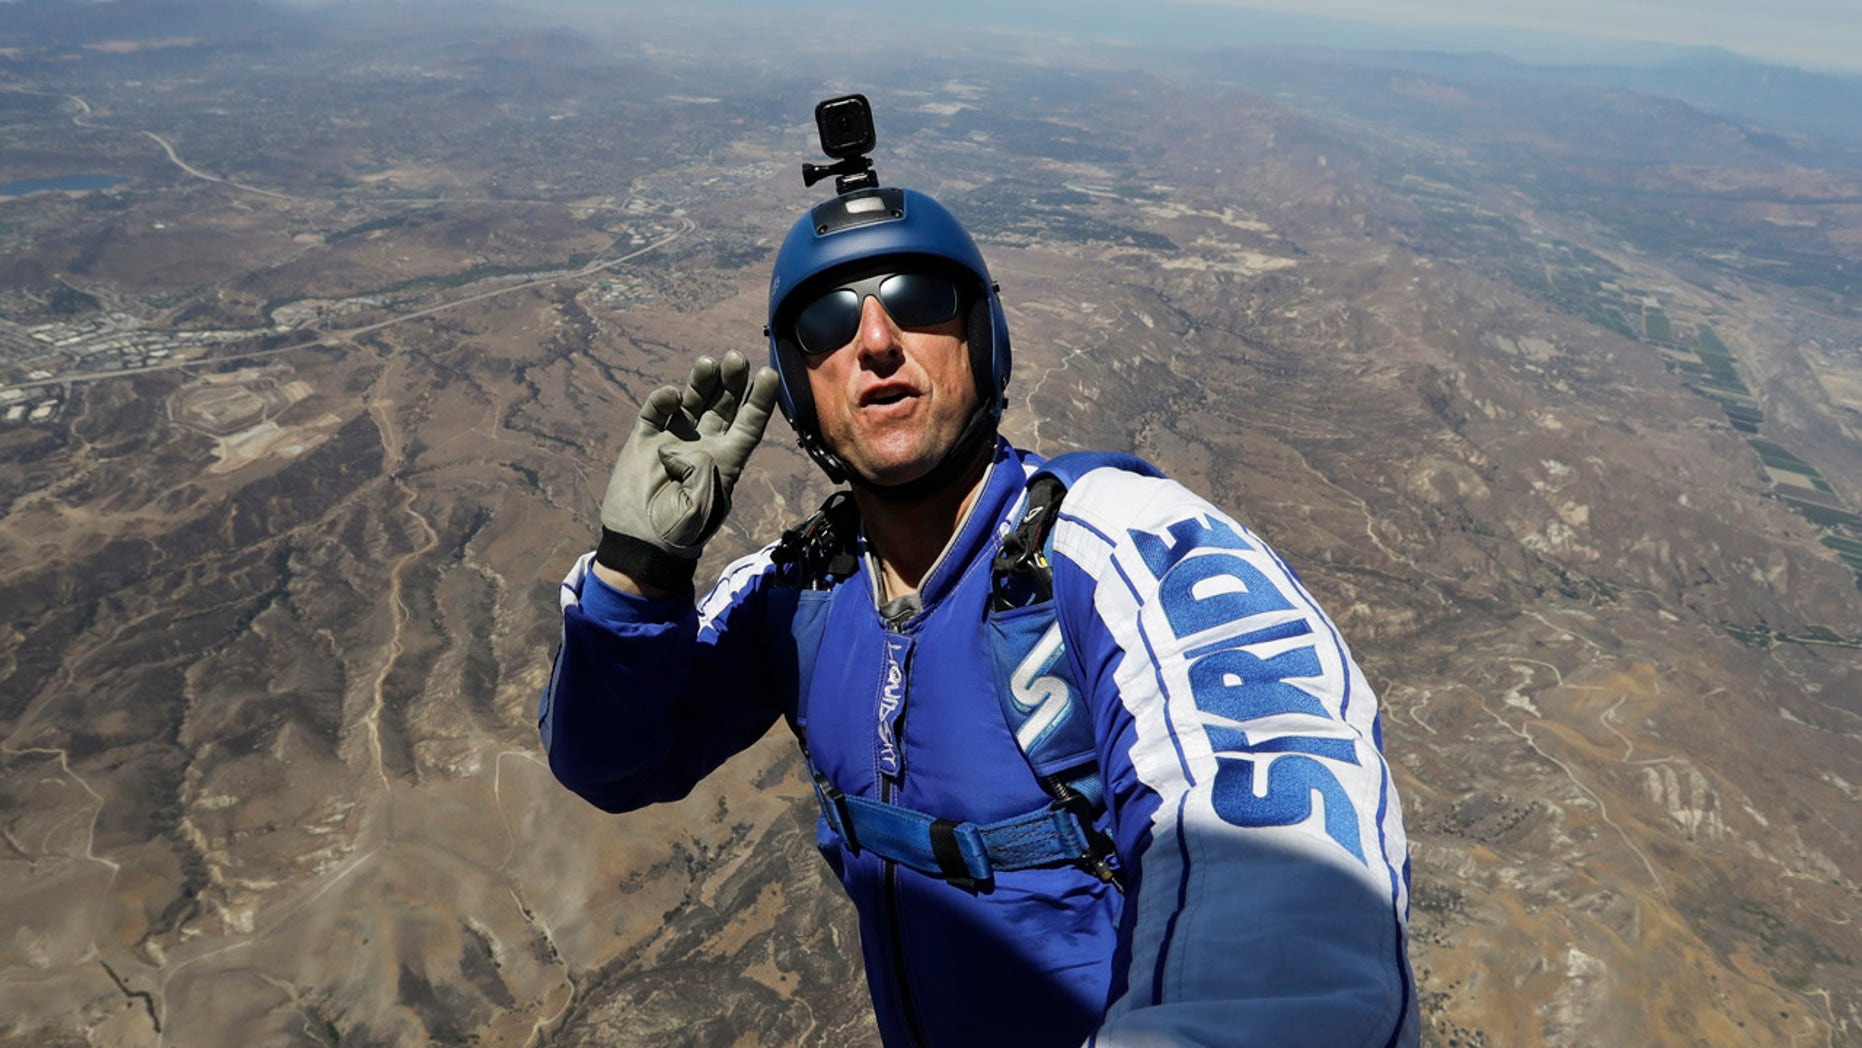 July 25, 2016: Skydiver Luke Aikins signals to pilot Aaron Fitzgerald as he prepares to jump from a helicopter in Simi Valley, Calif.